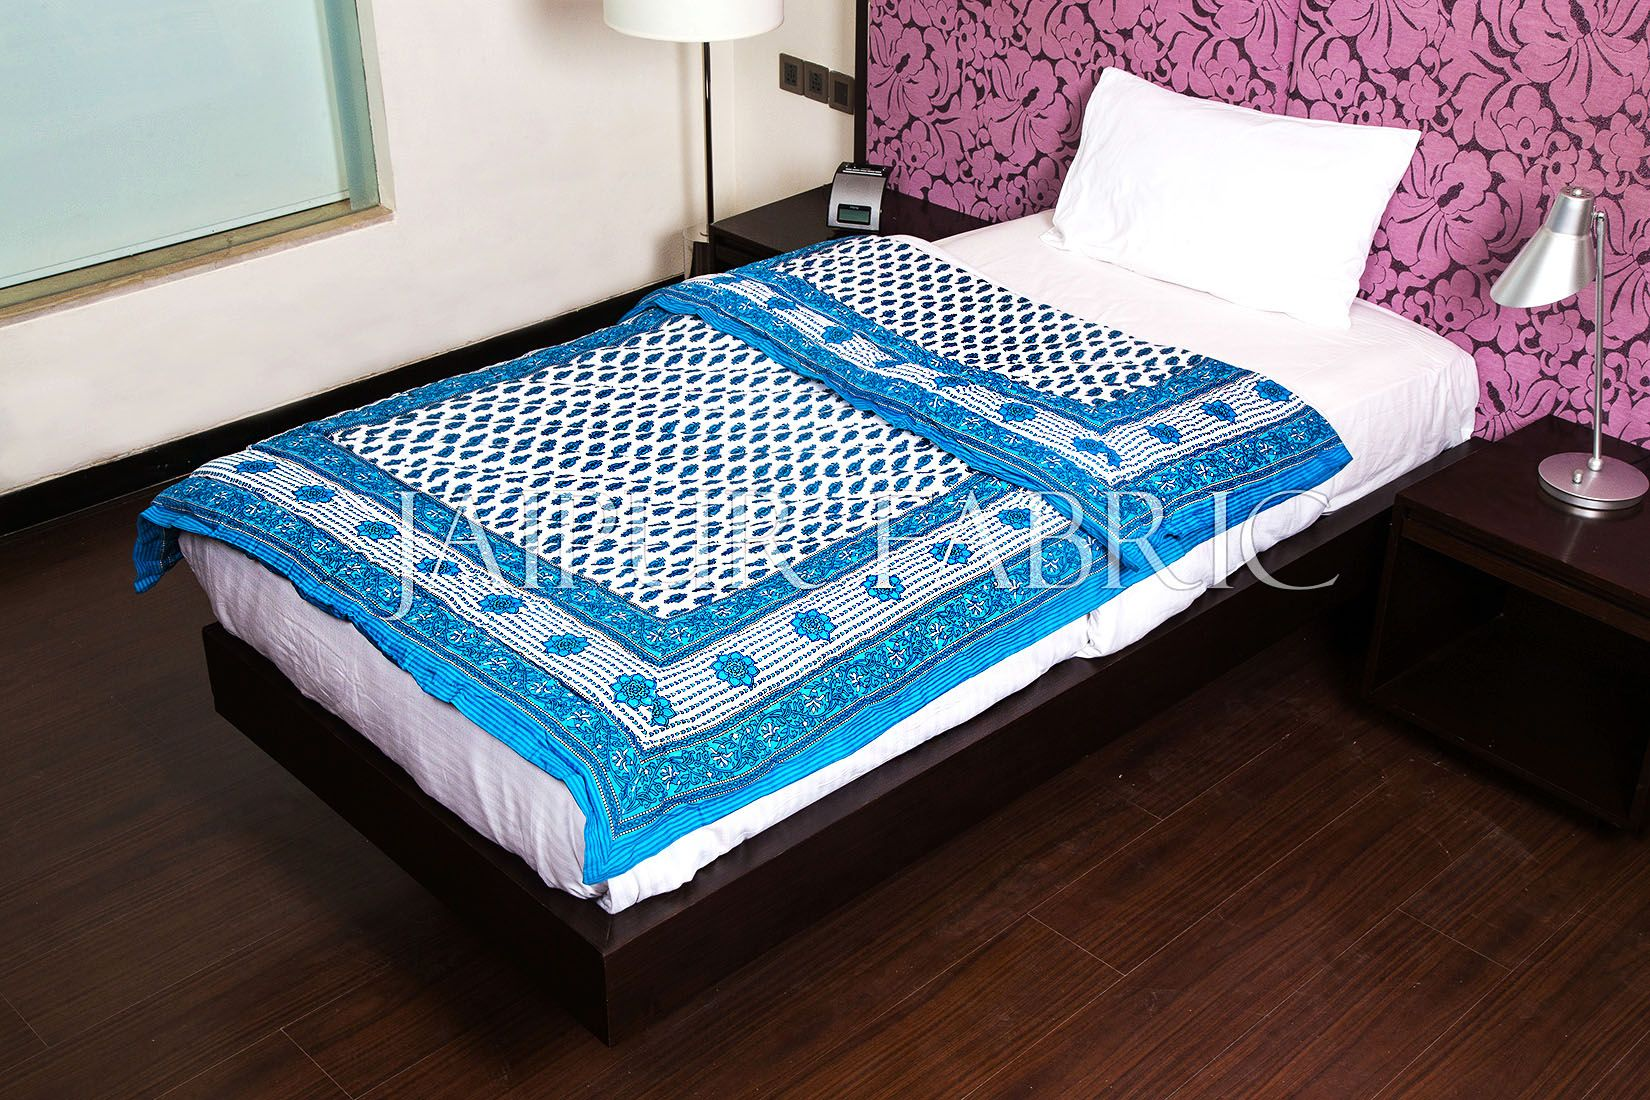 Cyan Leaf Print Cotton Handmade Single Bed Jaipuri Quilt